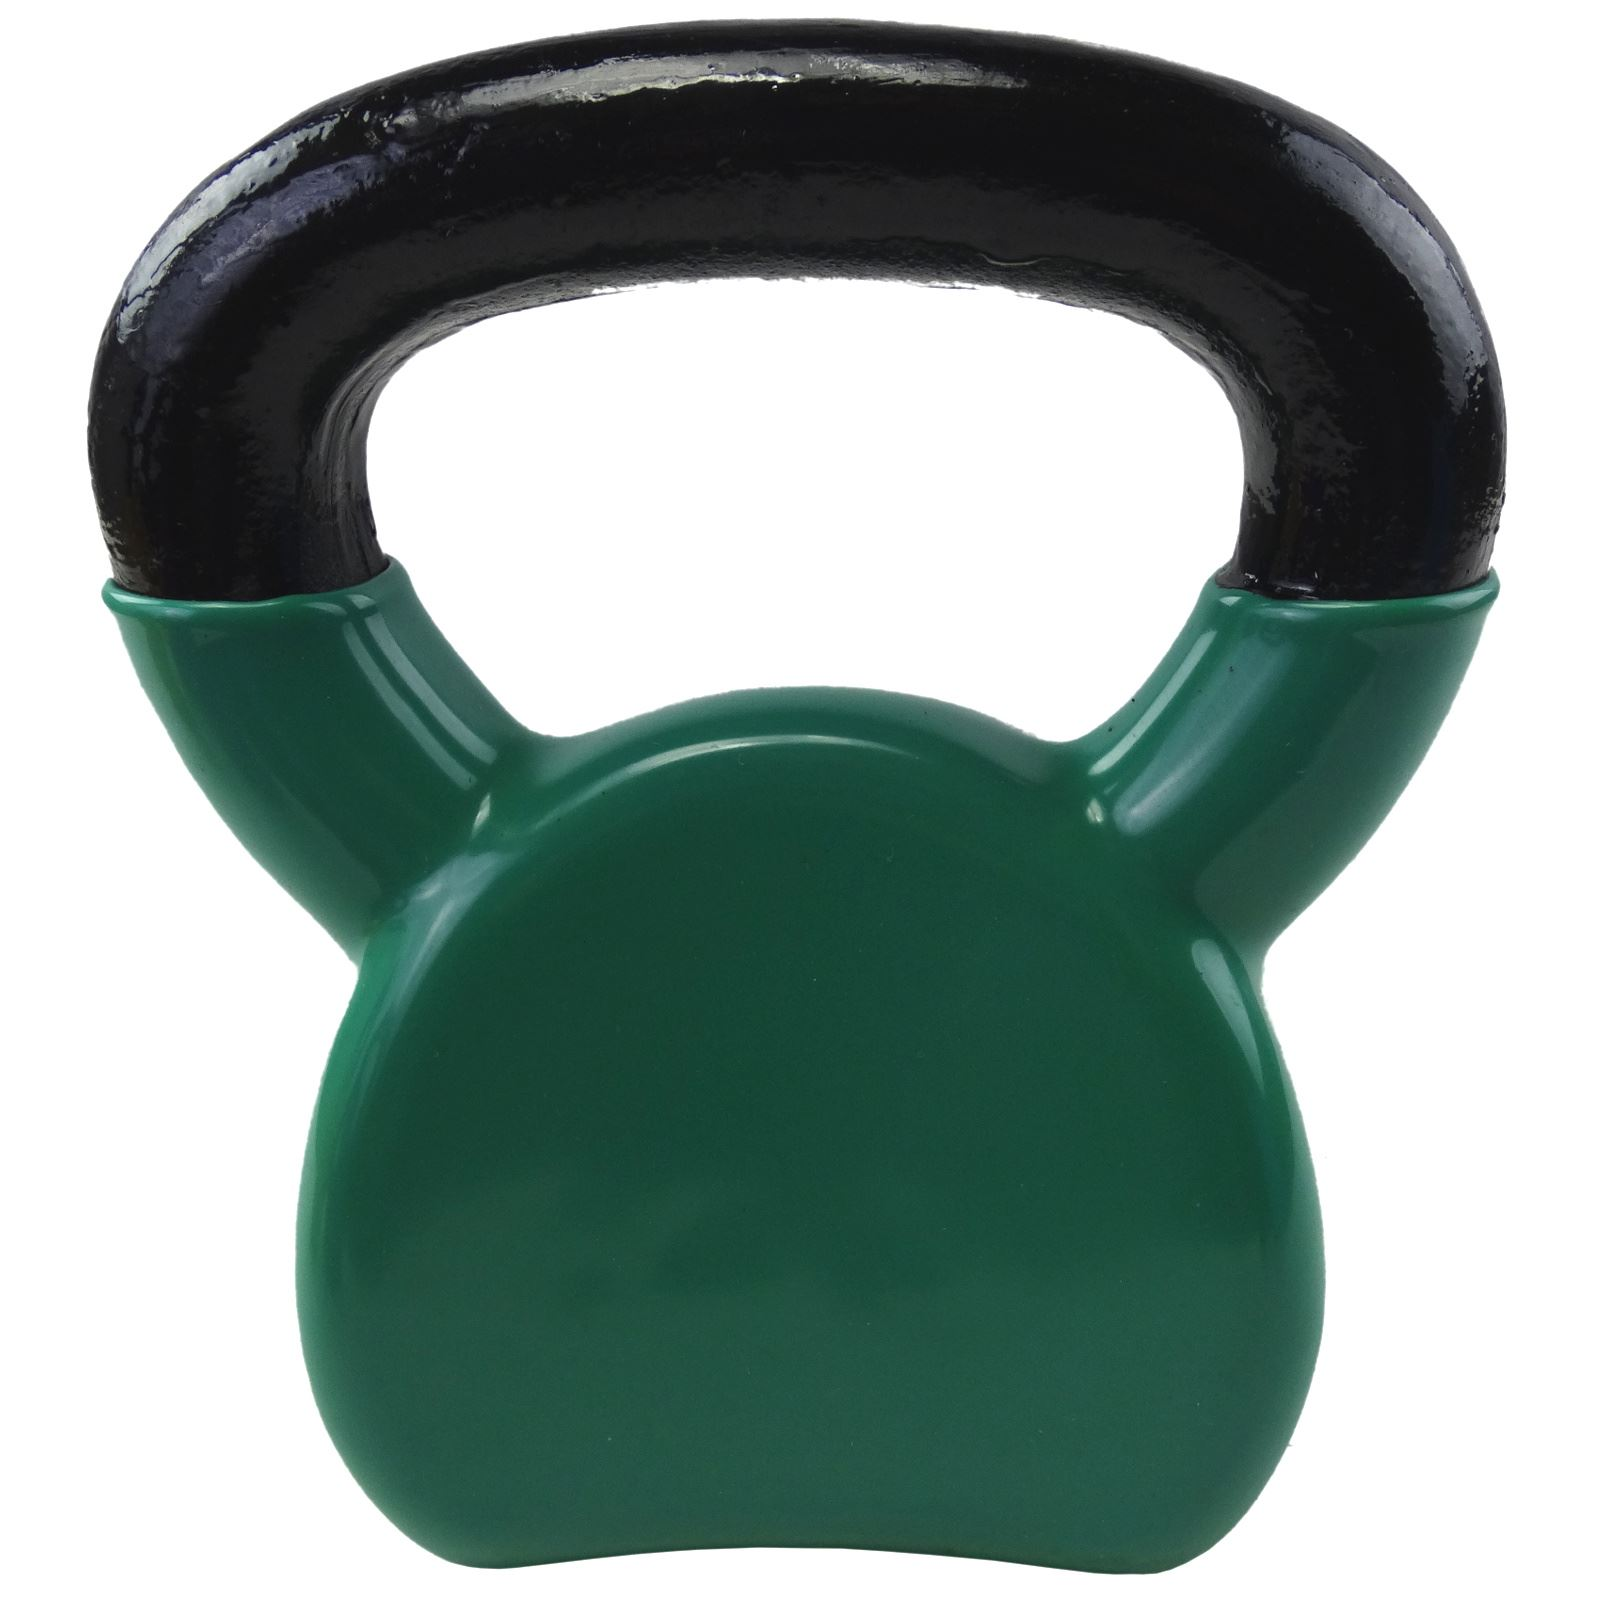 Kettlebell Courses Home: Light Weighted Vinyl Kettlebells Home Gym Training Fitness